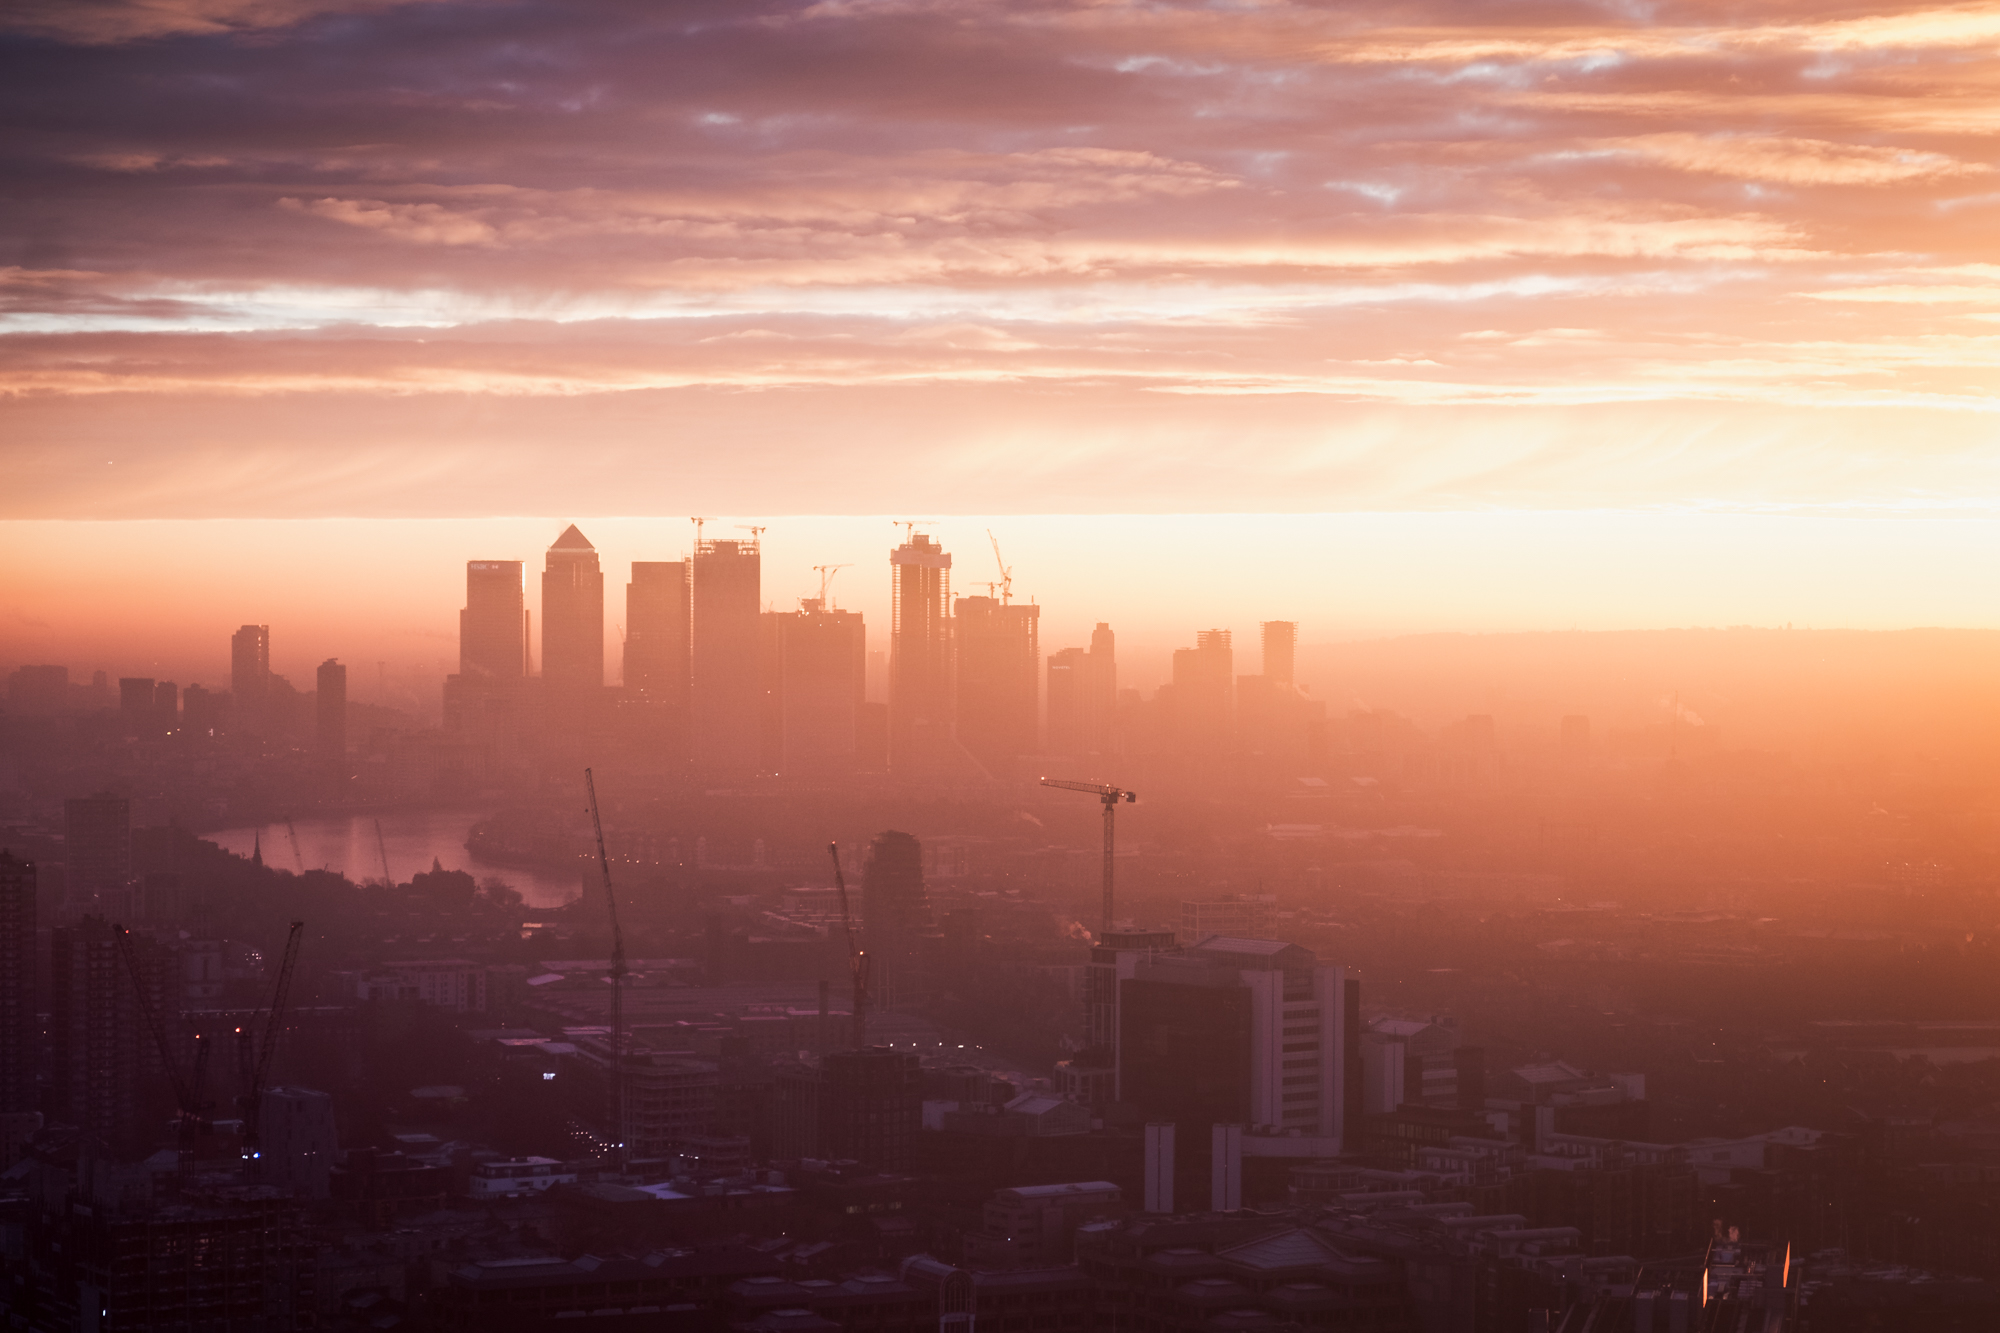 The view across East London at sunrise taken from the Sky Garden by Trevor Sherwin